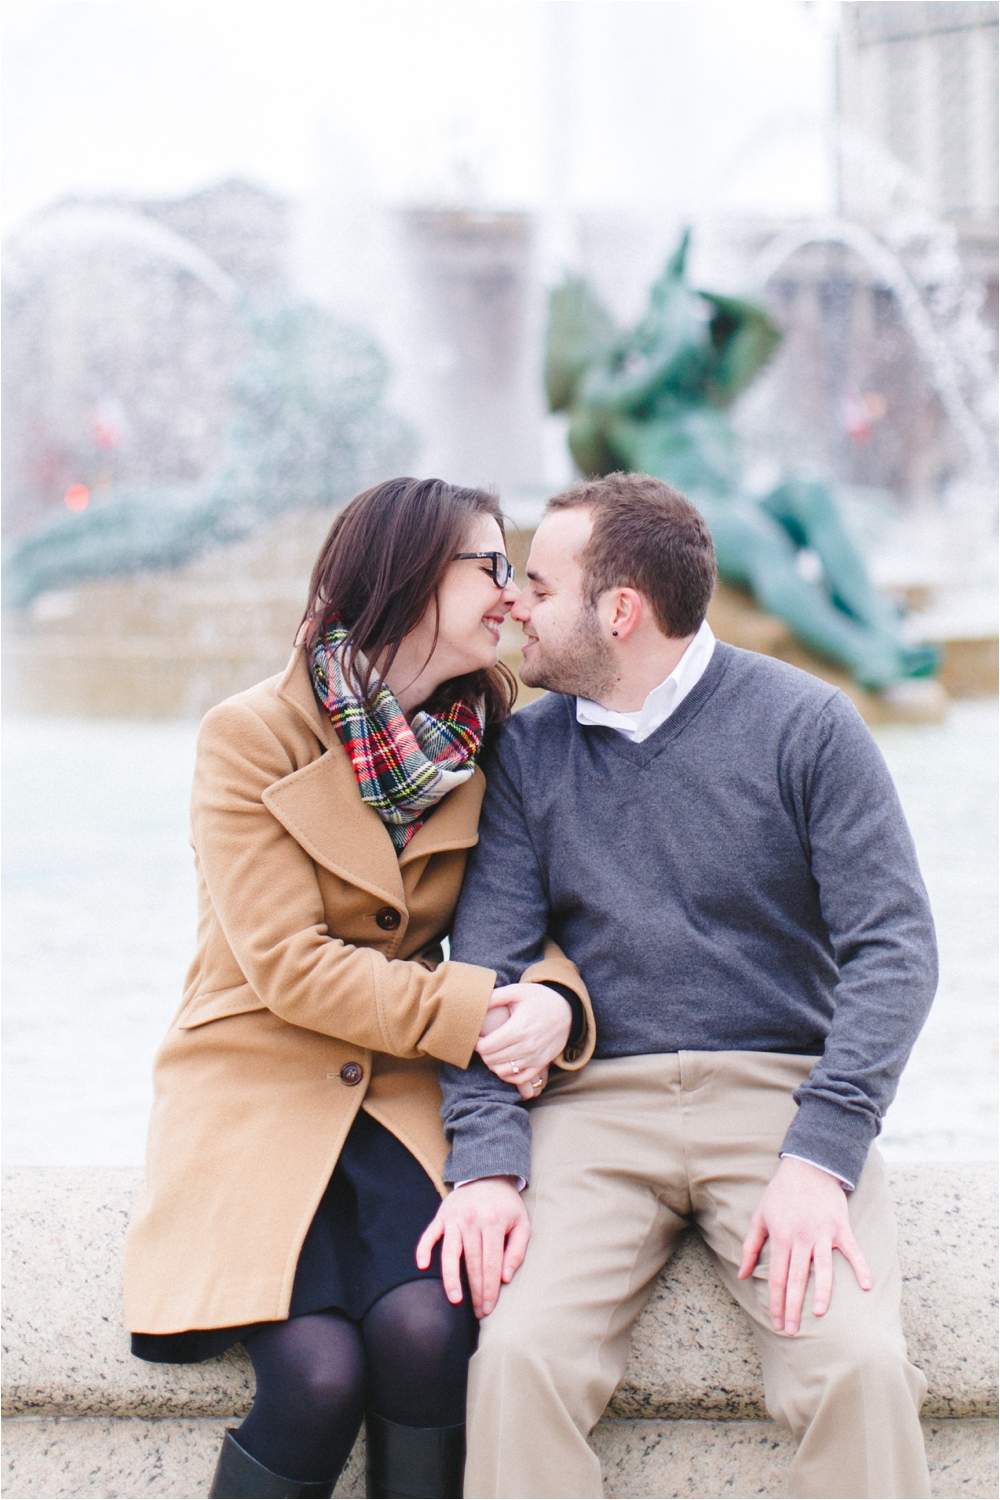 monica-nate-chilly-philadelphia-engagement_0013